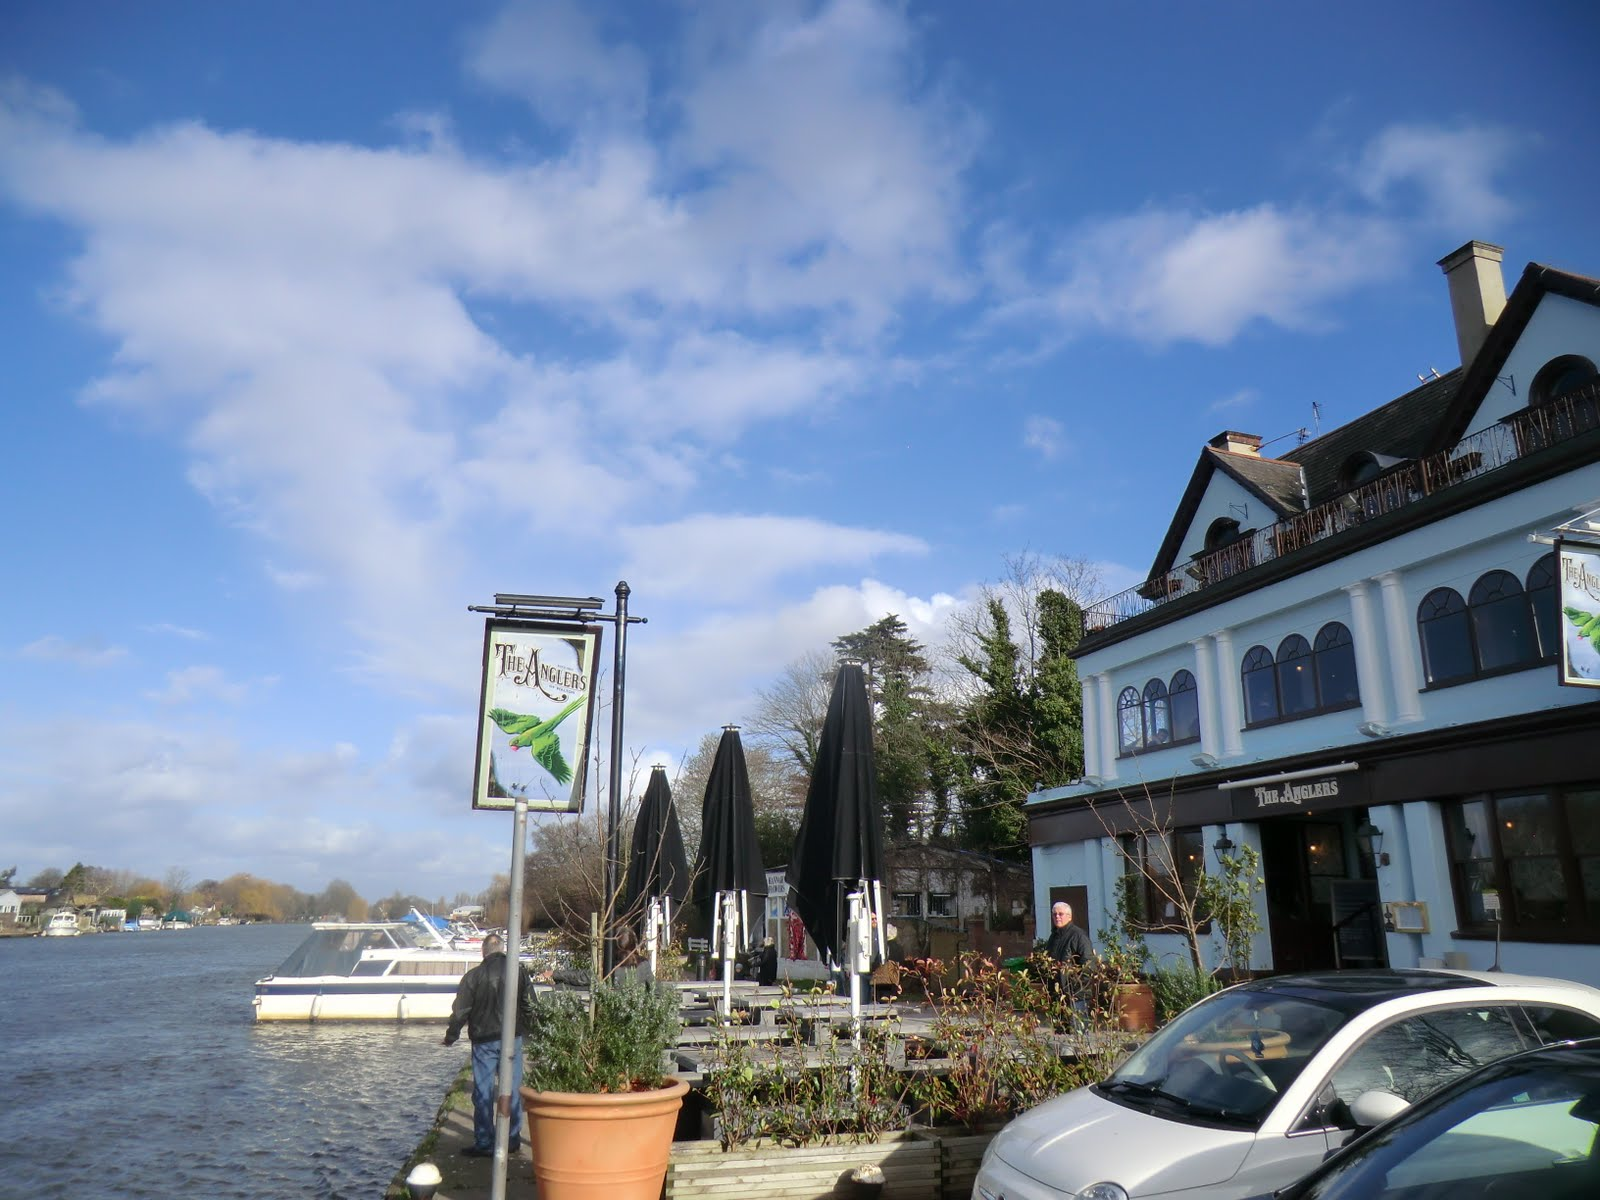 CIMG2682 The Anglers, Walton-on-Thames